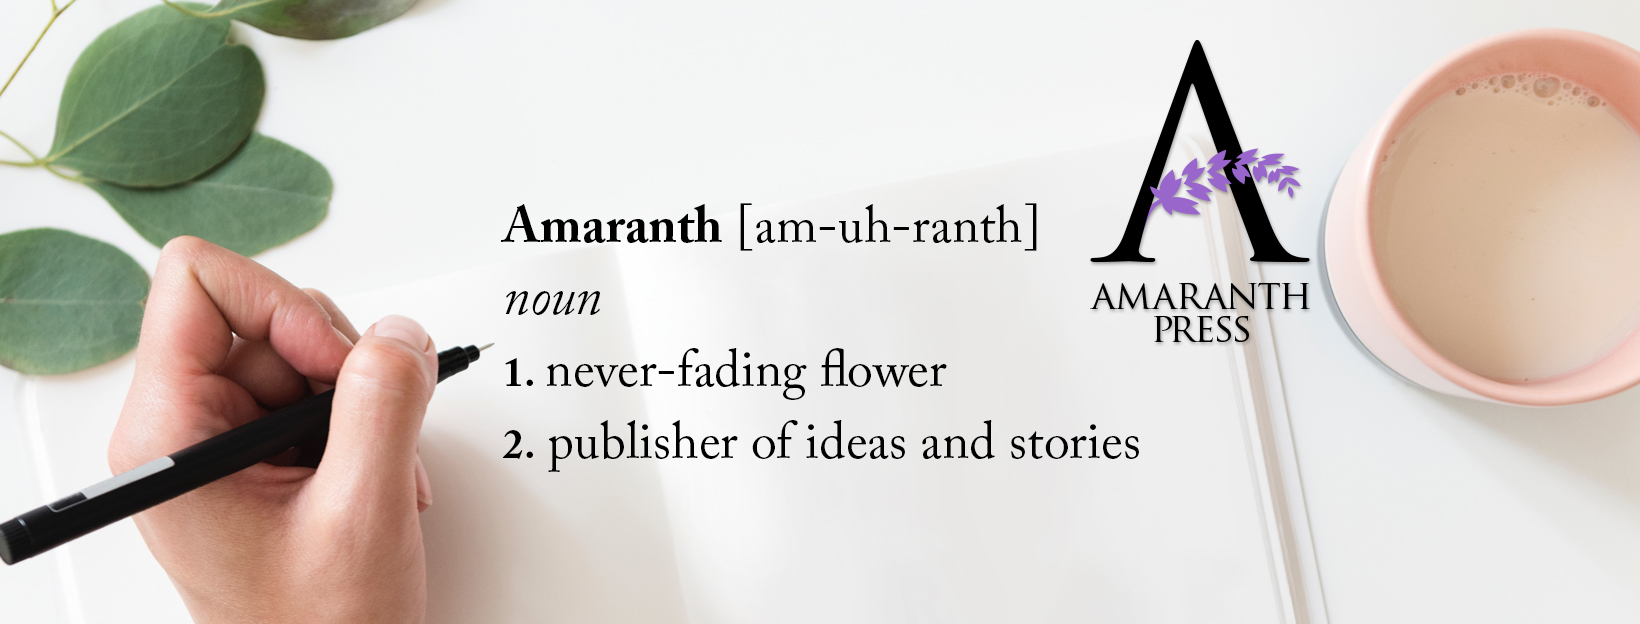 Dictionary description of Amaranth which is either a flower or a book publisher. Get help publishing your book